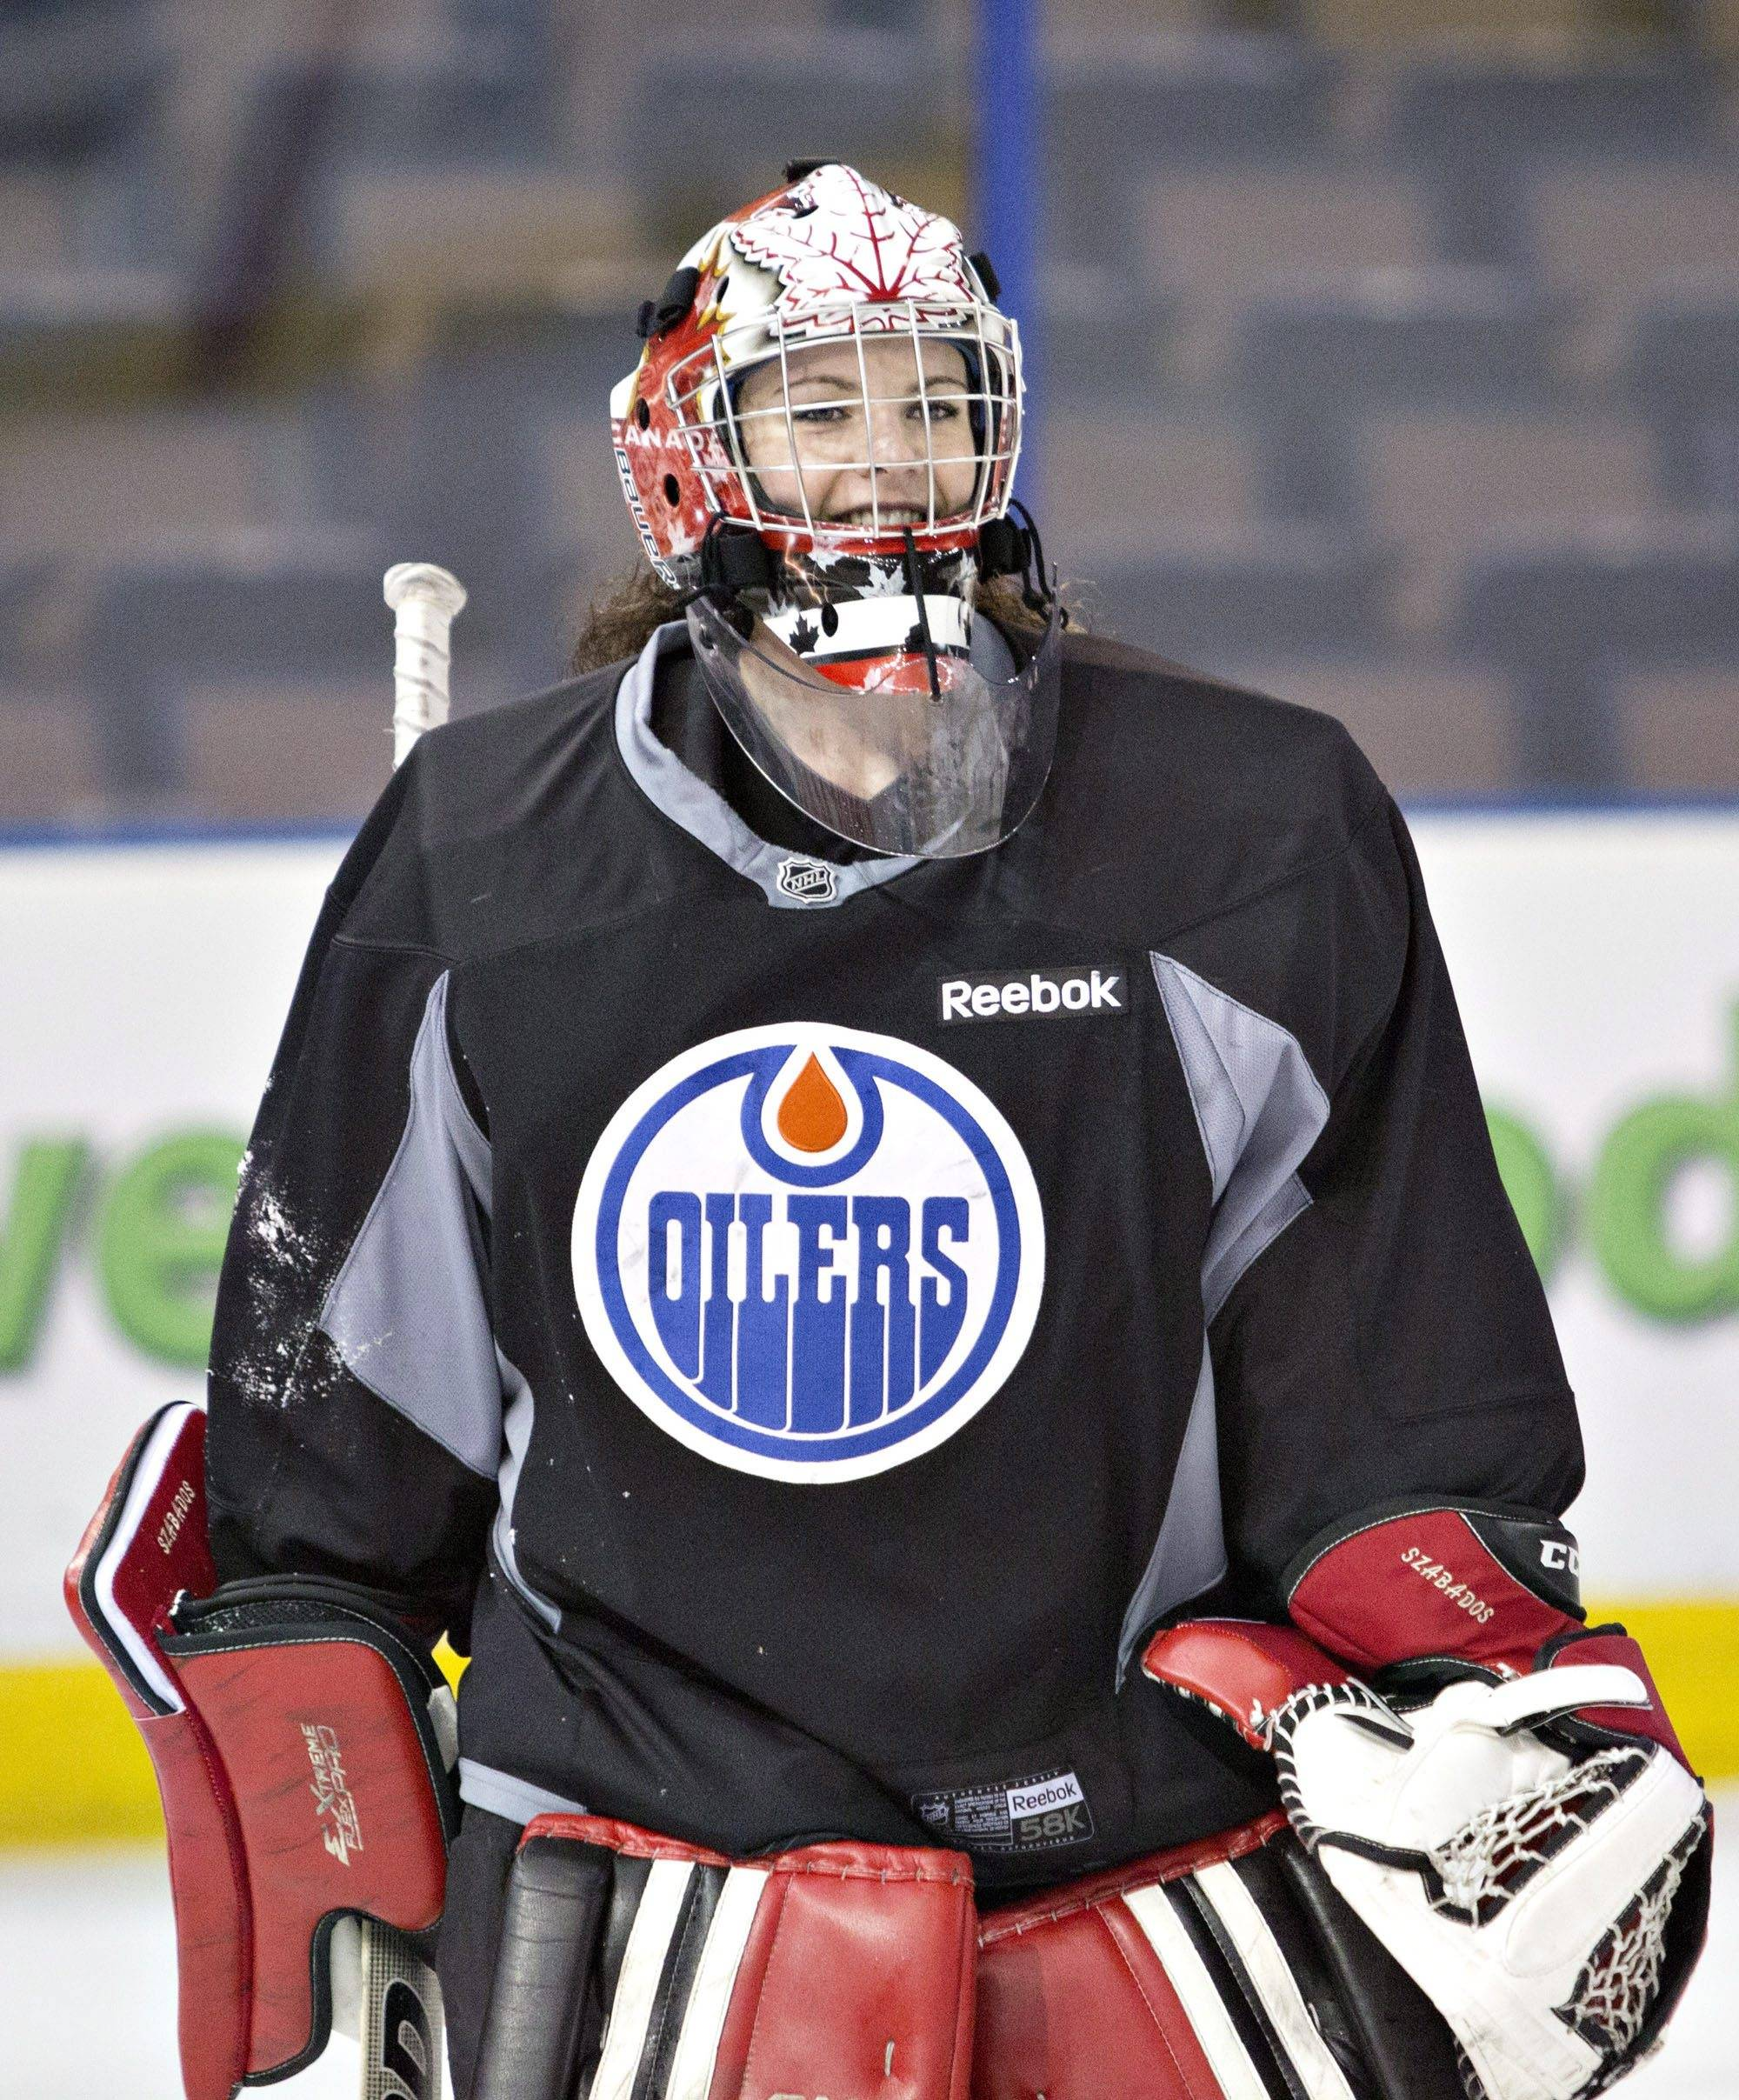 Canadian Olympic women's team goalie Shannon Szabados practices with the Edmonton Oilers NHL hockey team in Edmonton, Alberta, Wednesday, March 5, 2014.